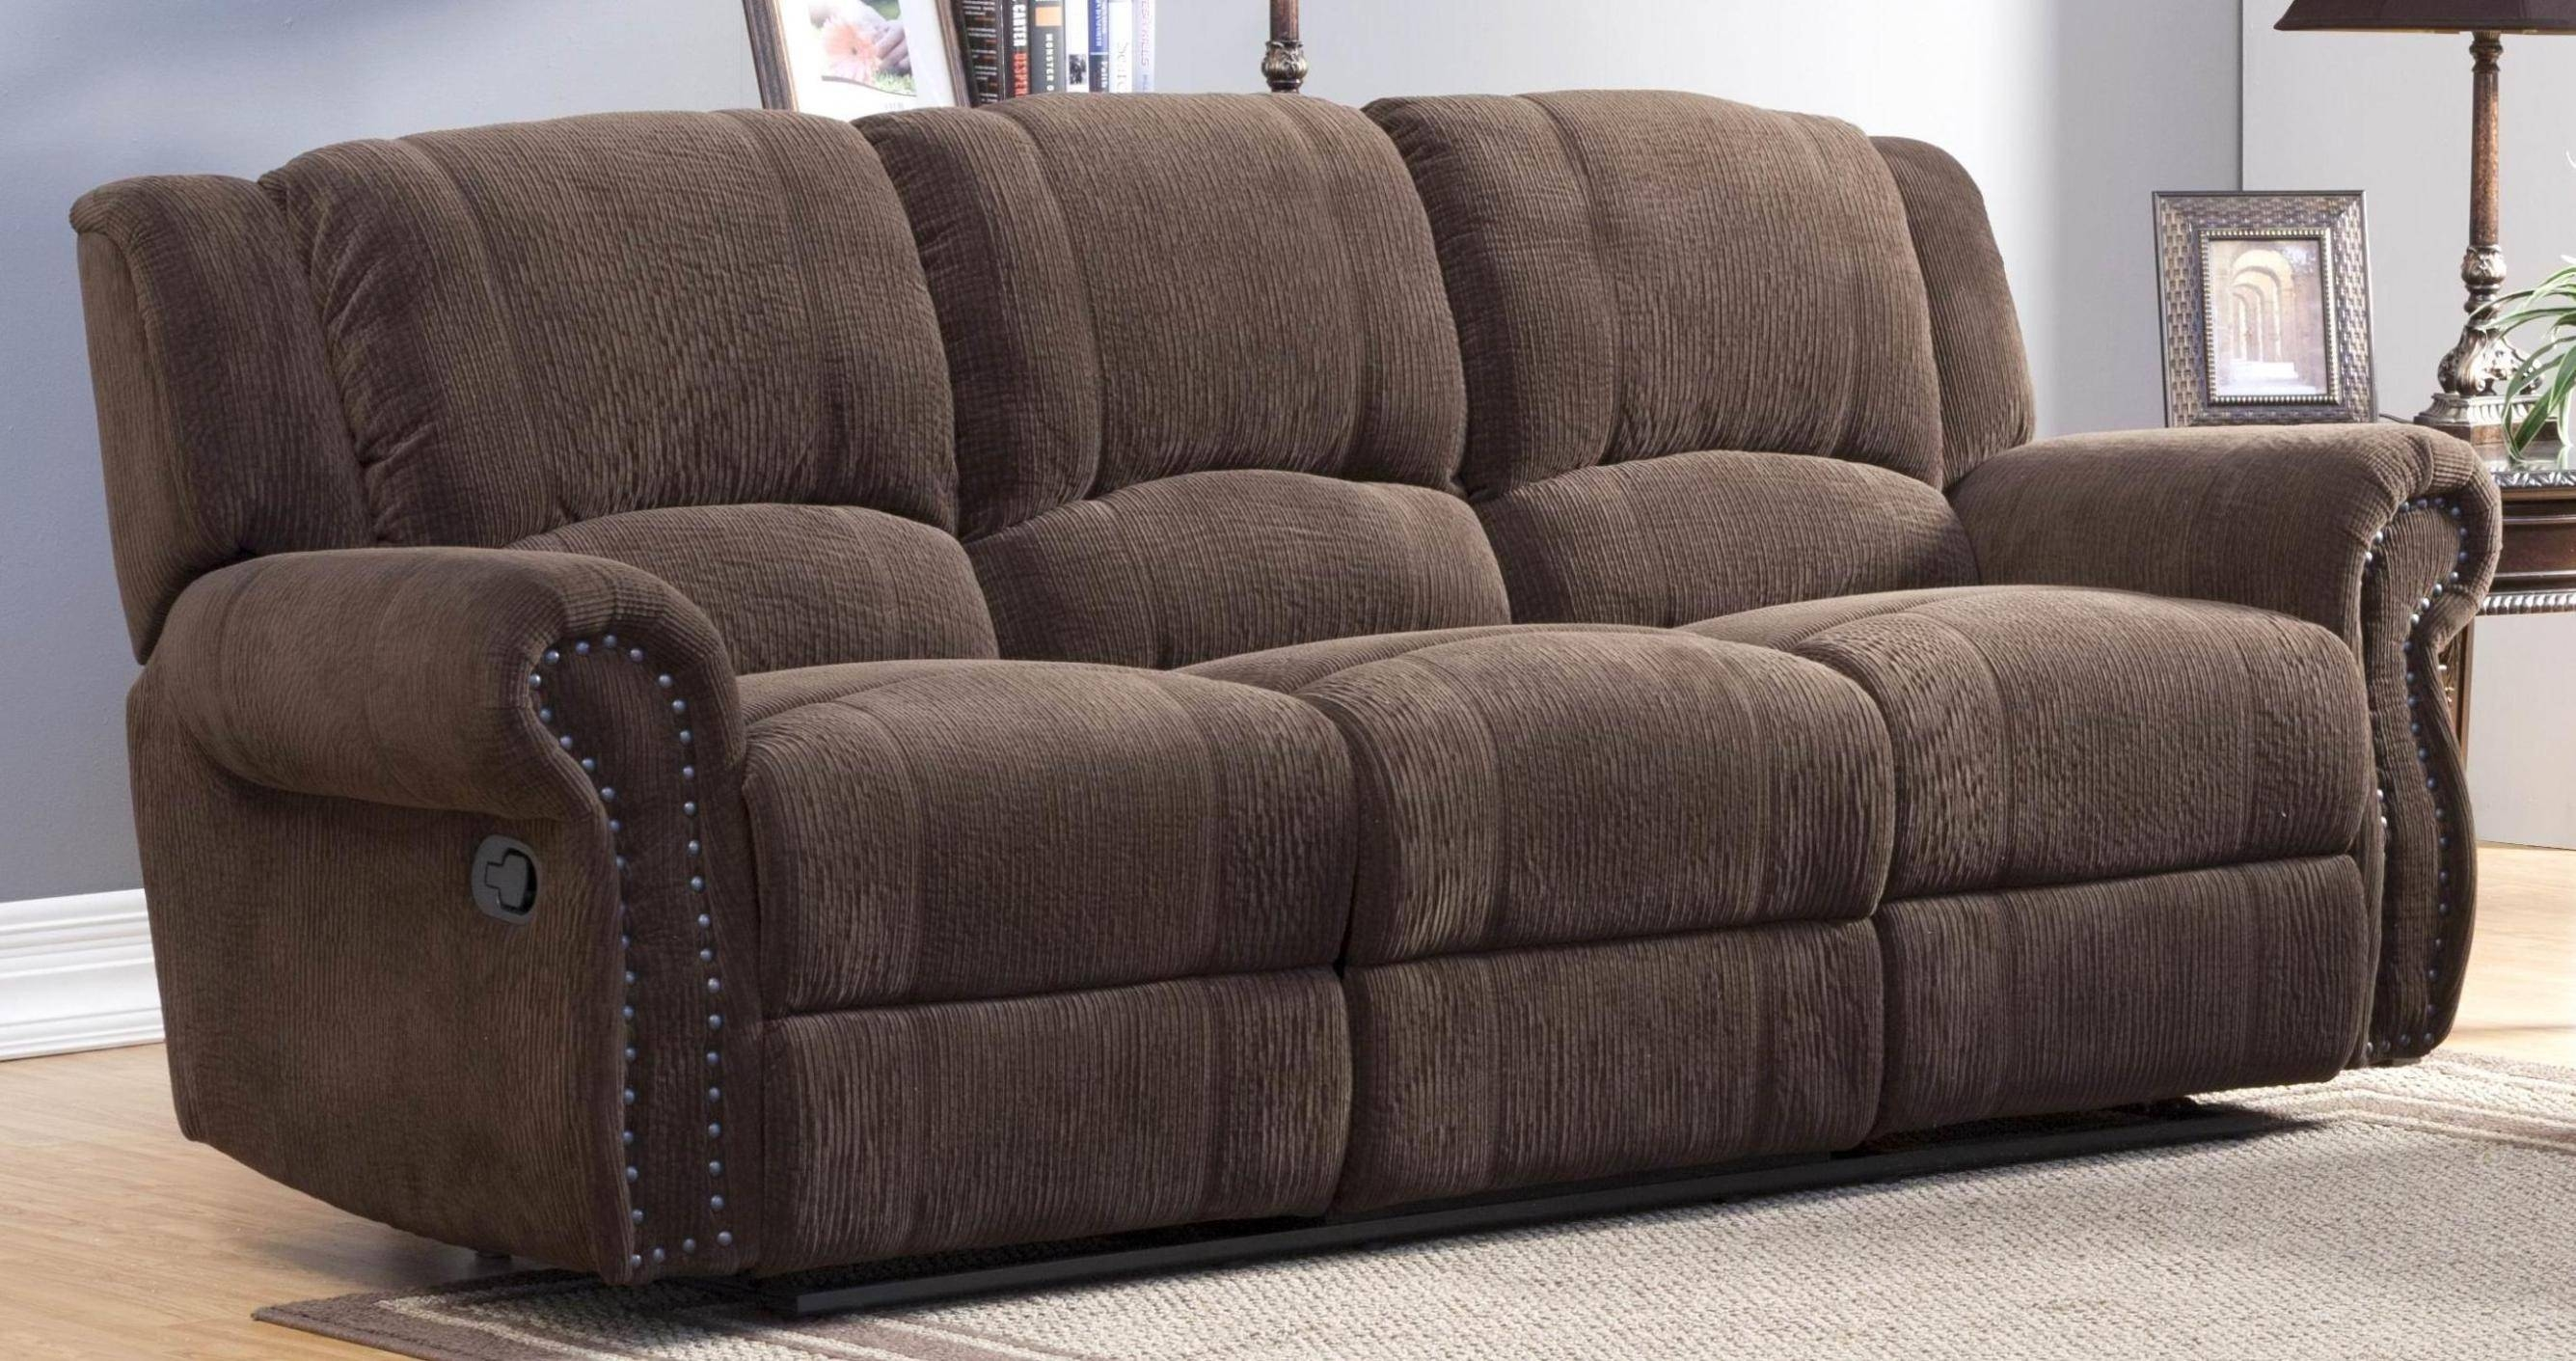 Best Slipcovers For Reclining Sectional Sofas pertaining to Slipcovers for Sectional Sofas With Recliners (Image 2 of 30)